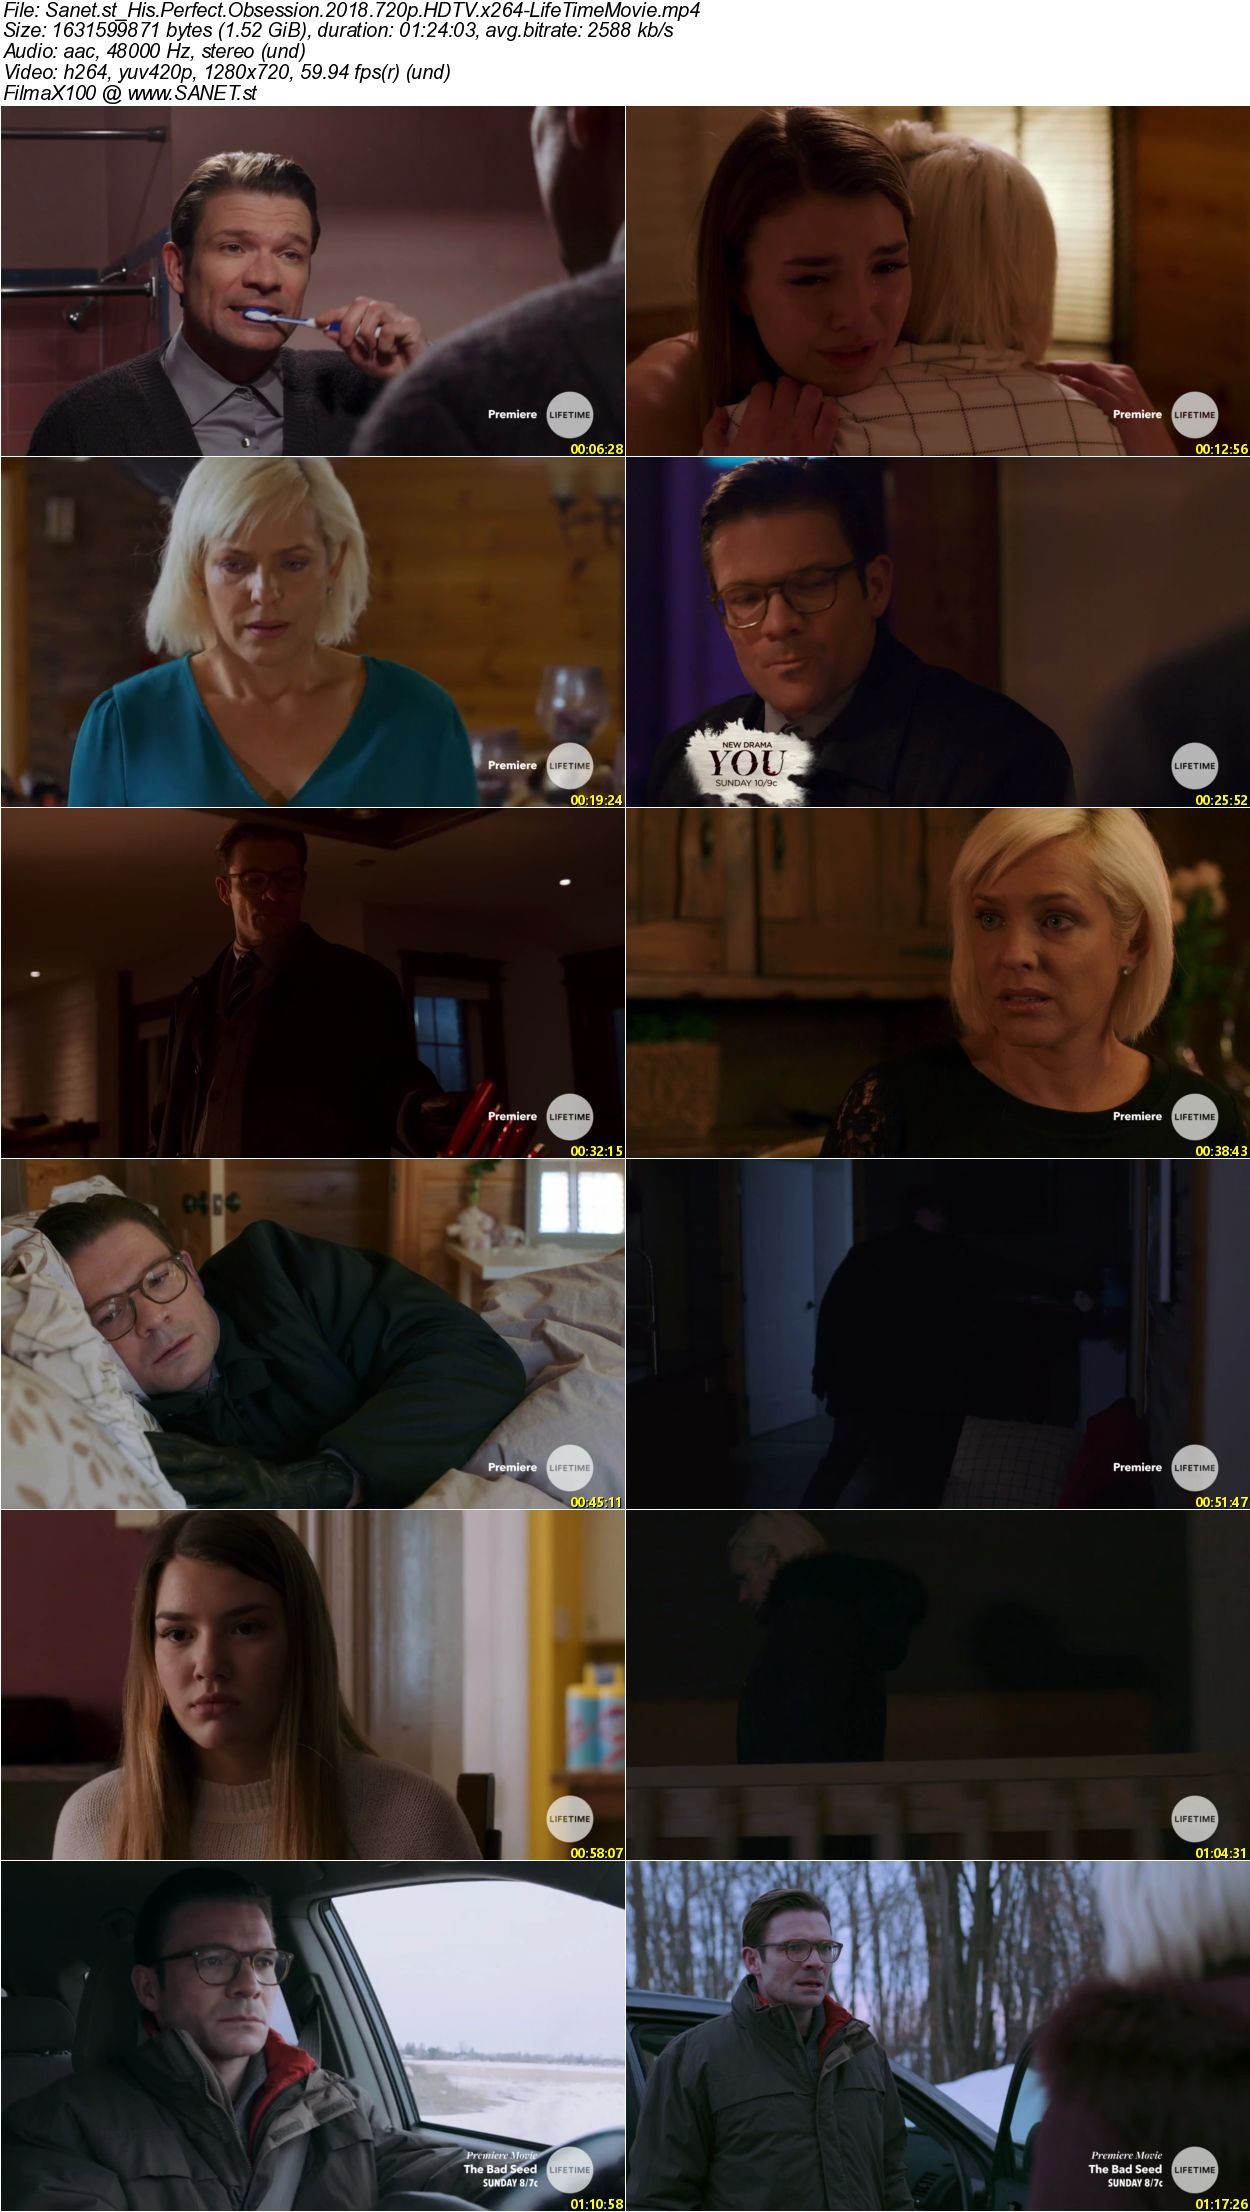 His Perfect Obsession : perfect, obsession, Download, Perfect, Obsession, X264-LifeTimeMovie, SoftArchive